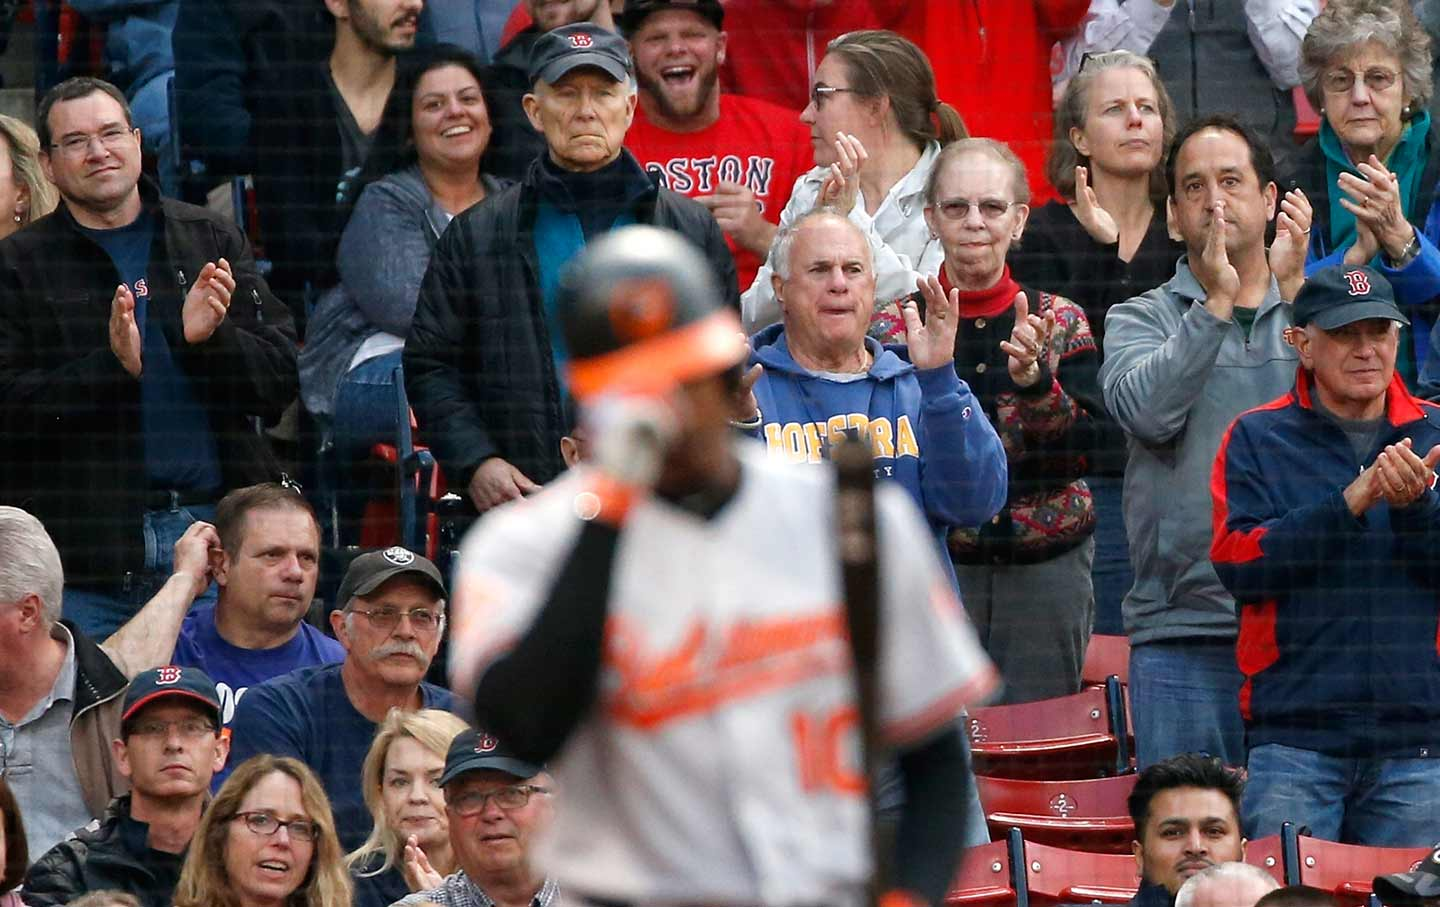 Orioles' Manny Machado directs profanity-filled rant at Red Sox's Chris Sale